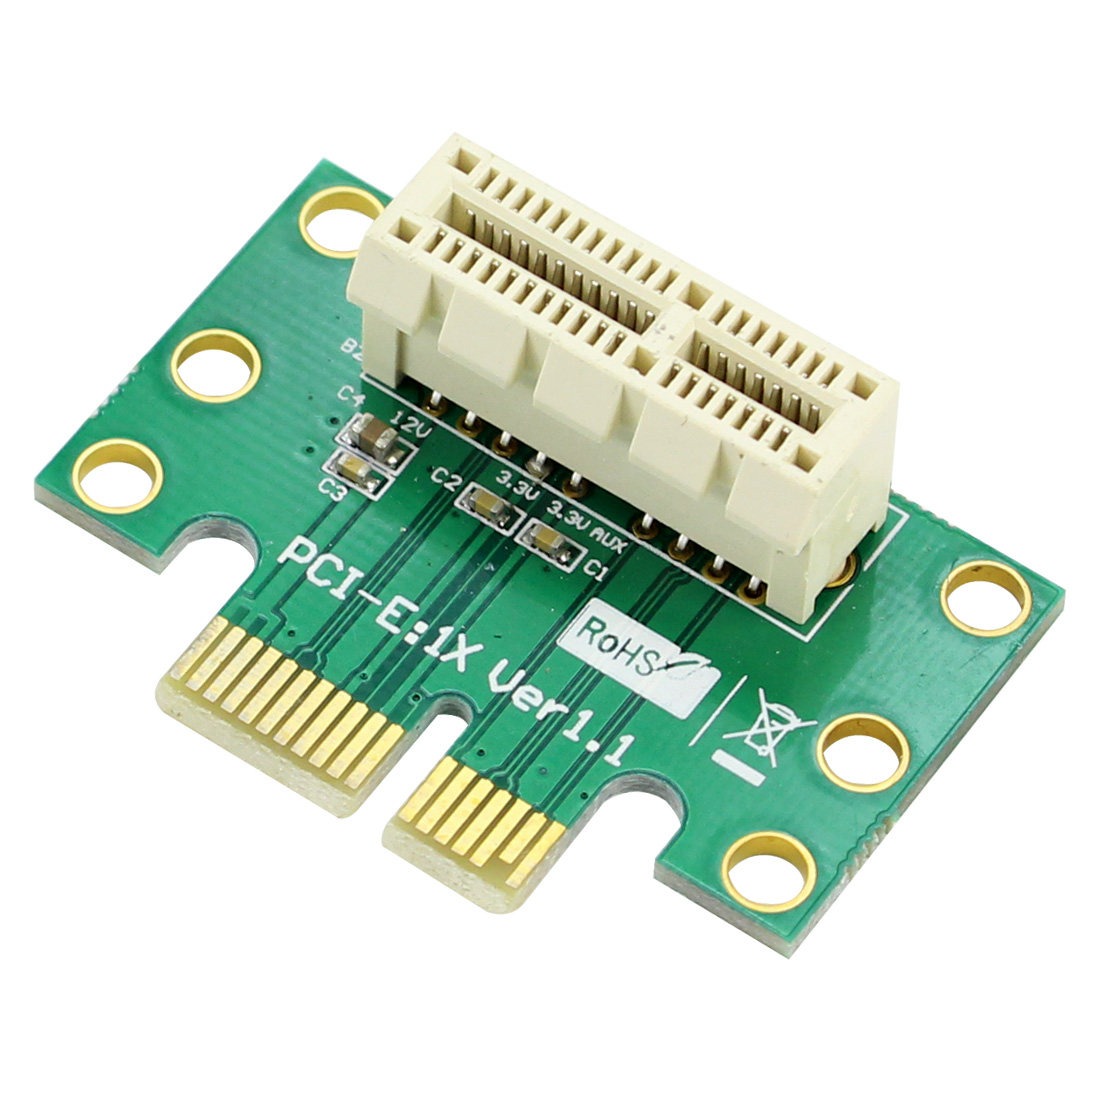 PCI-E Express 16X 90 Degree Adapter Riser Card for 2U Computer Chassis